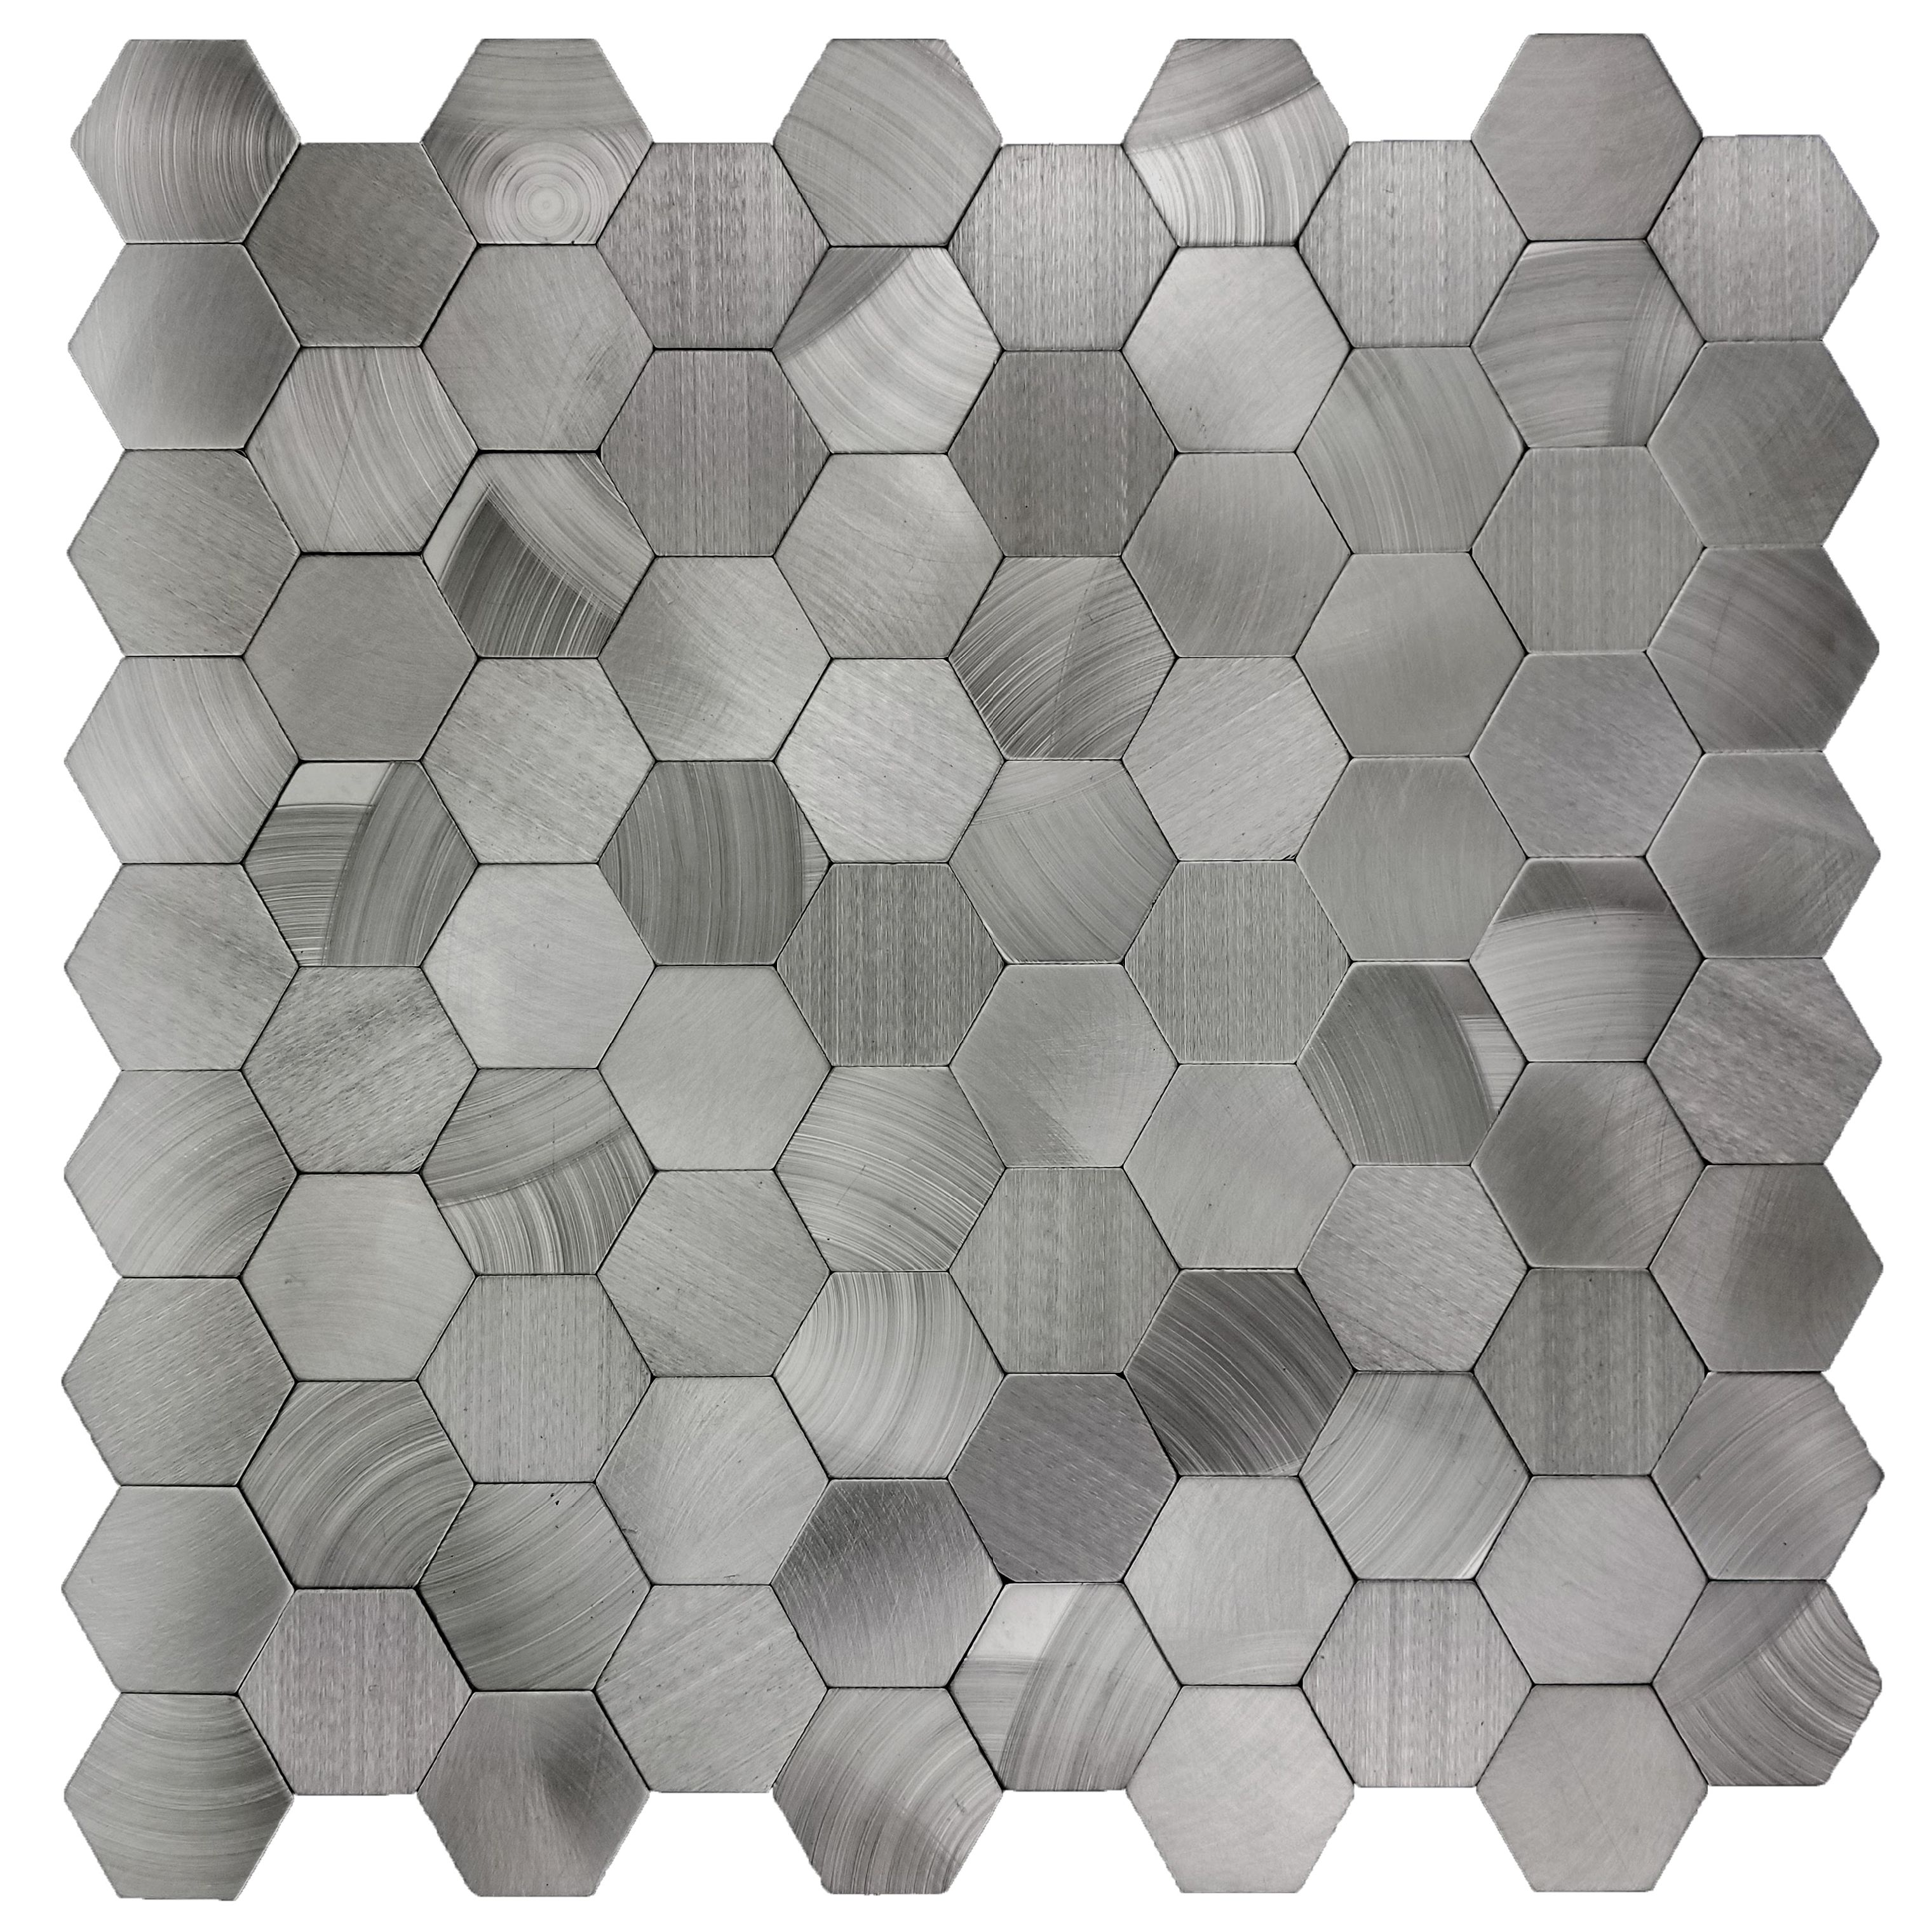 "Abolos- Enchanting Hexagon Wall Backsplash 1.5"" x 1.5"" Peel and Stick Metal Mosaic Tile in Silver (19.80sqft / 22pc Box)"